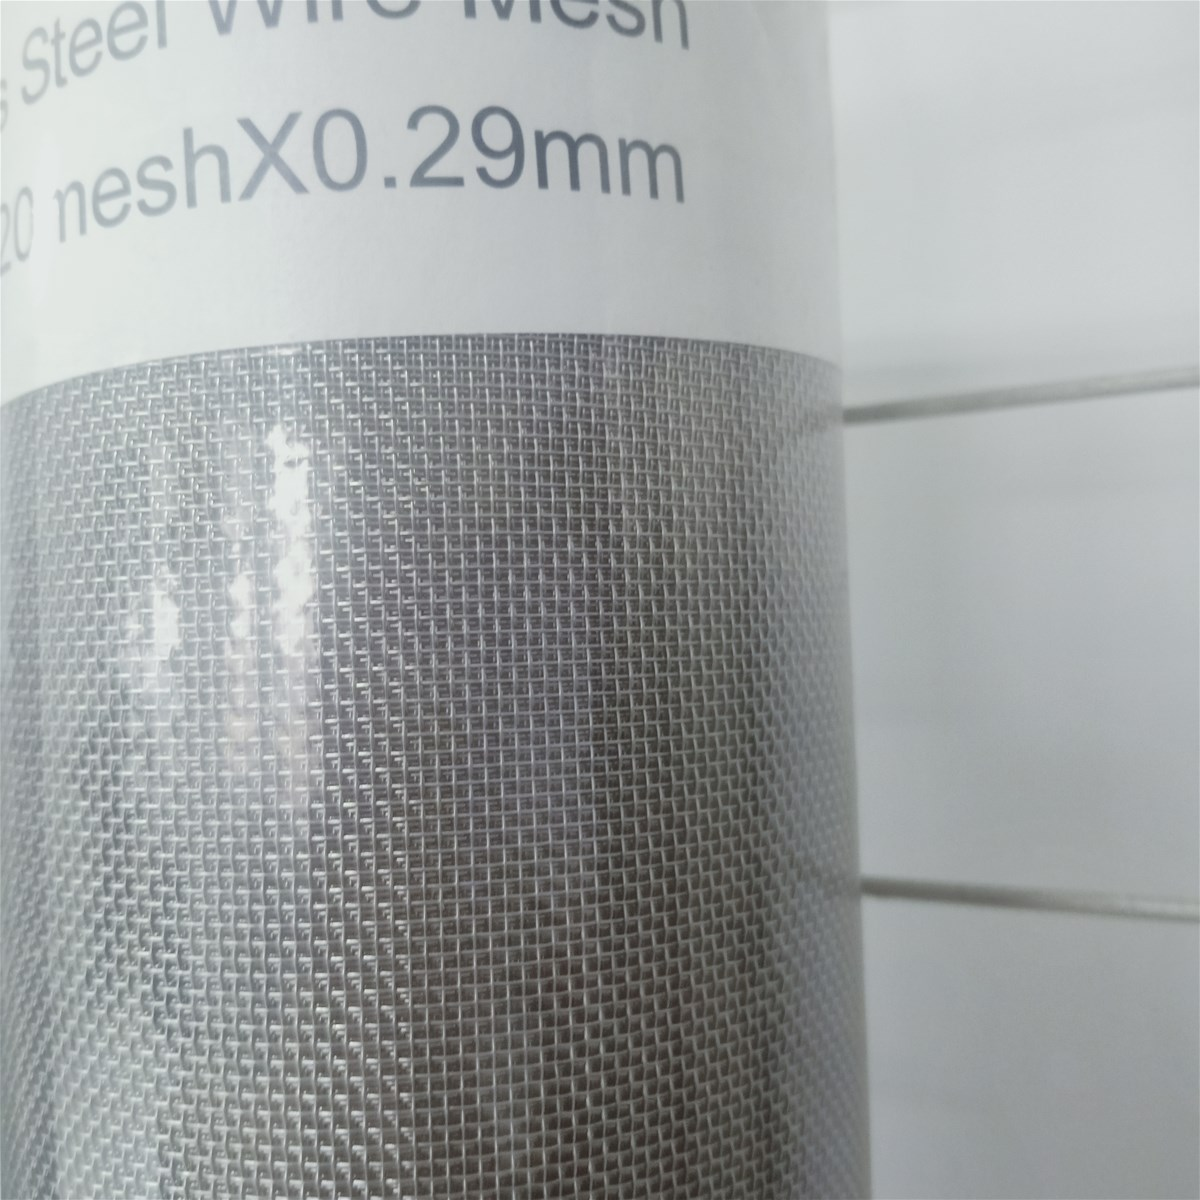 stainless steel wire mesh high quality and low price